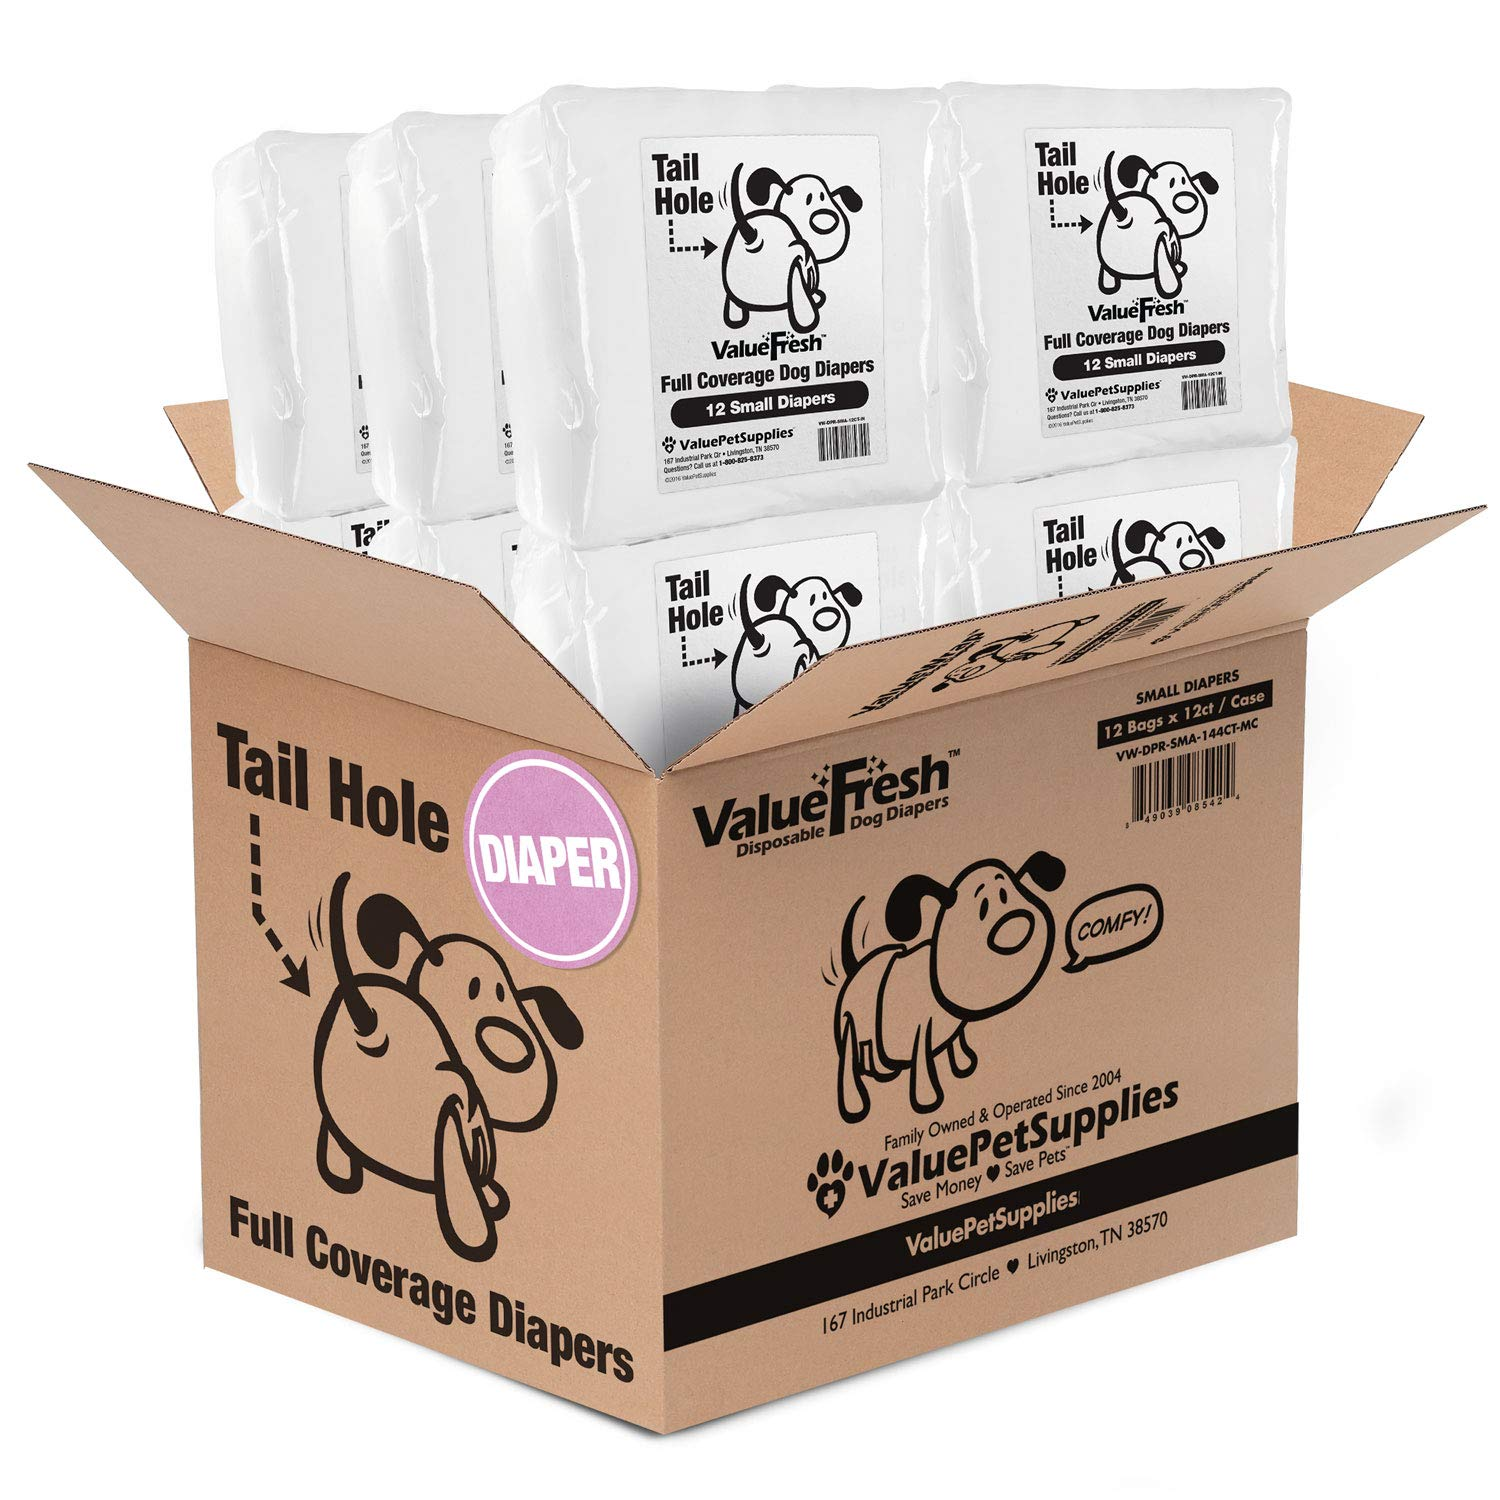 ValueFresh Dog Diapers with Tail-Hole, Small, 144 Count